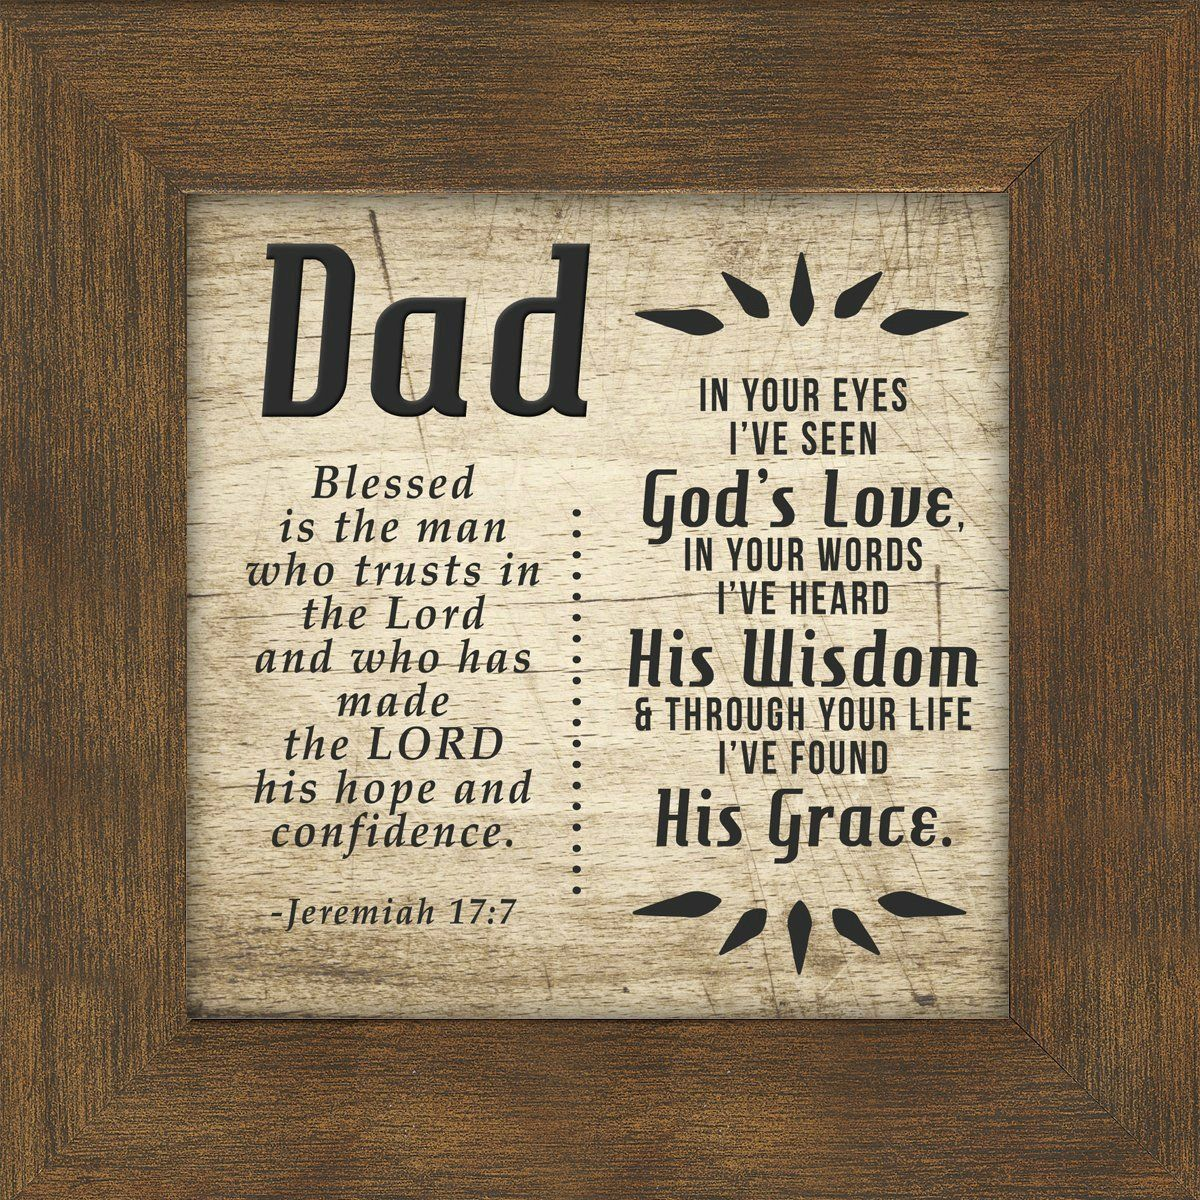 Dad Quotes From Daughter In Spanish: Dad, Father, Jeremiah 17:7, Saying Framed 5X5 Gift